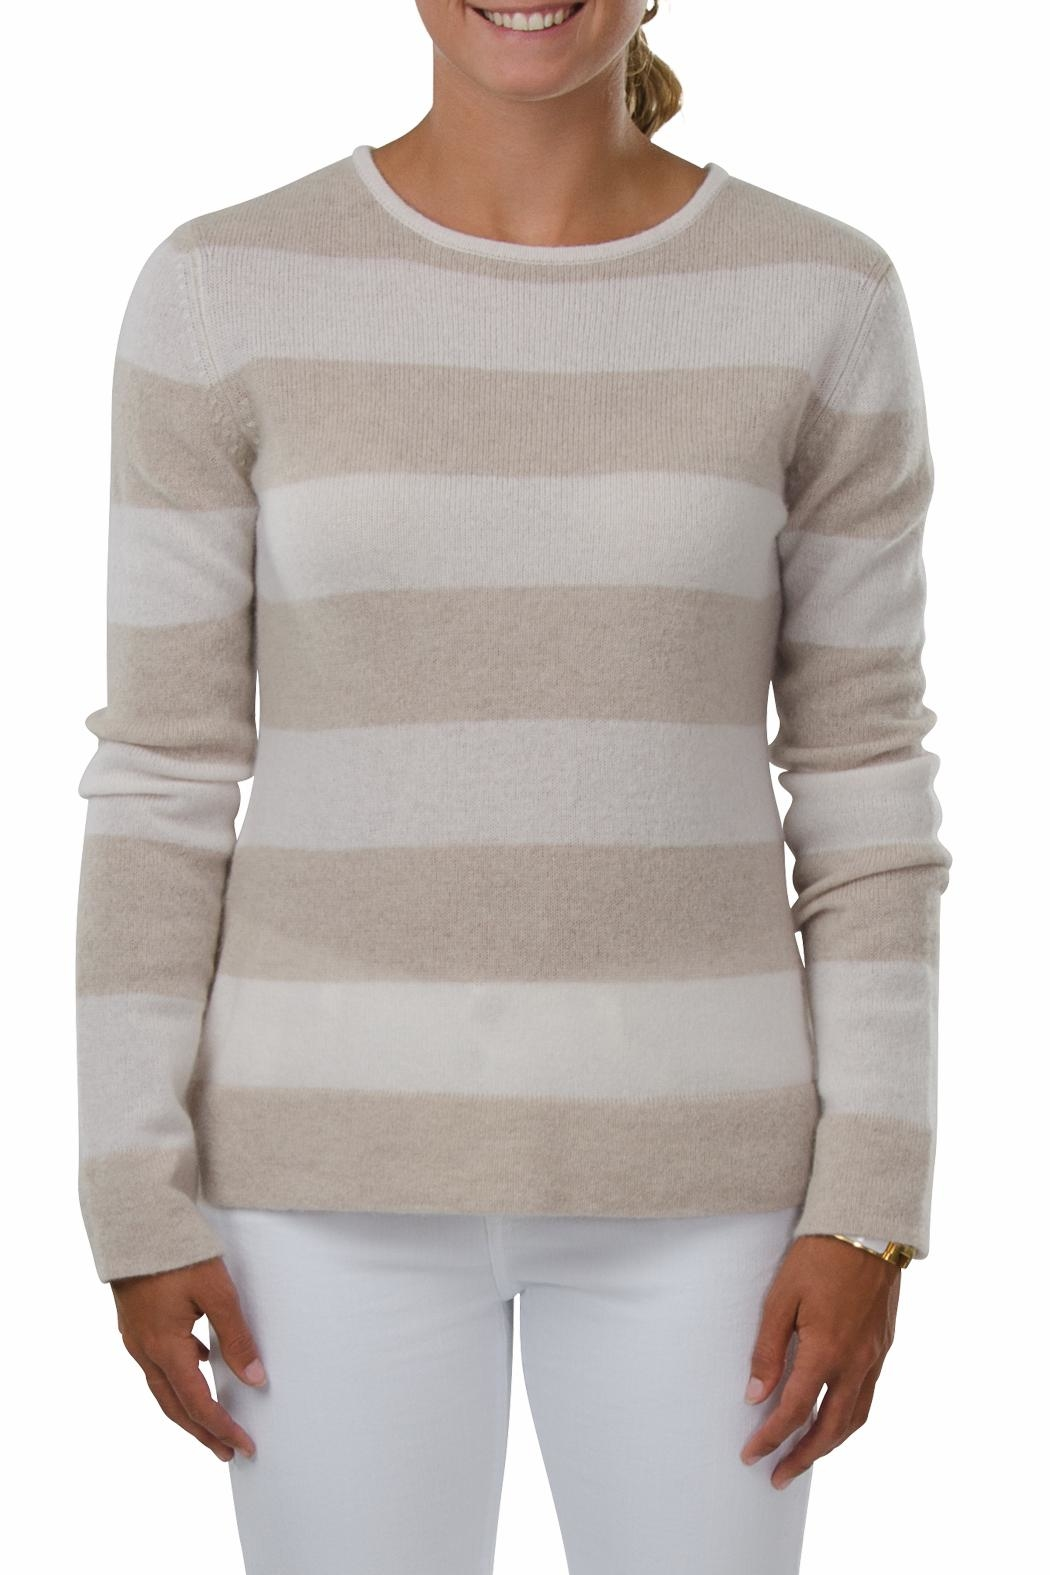 Cortland Park Cashmere Lindsey Cashmere Shirt - Front Cropped Image